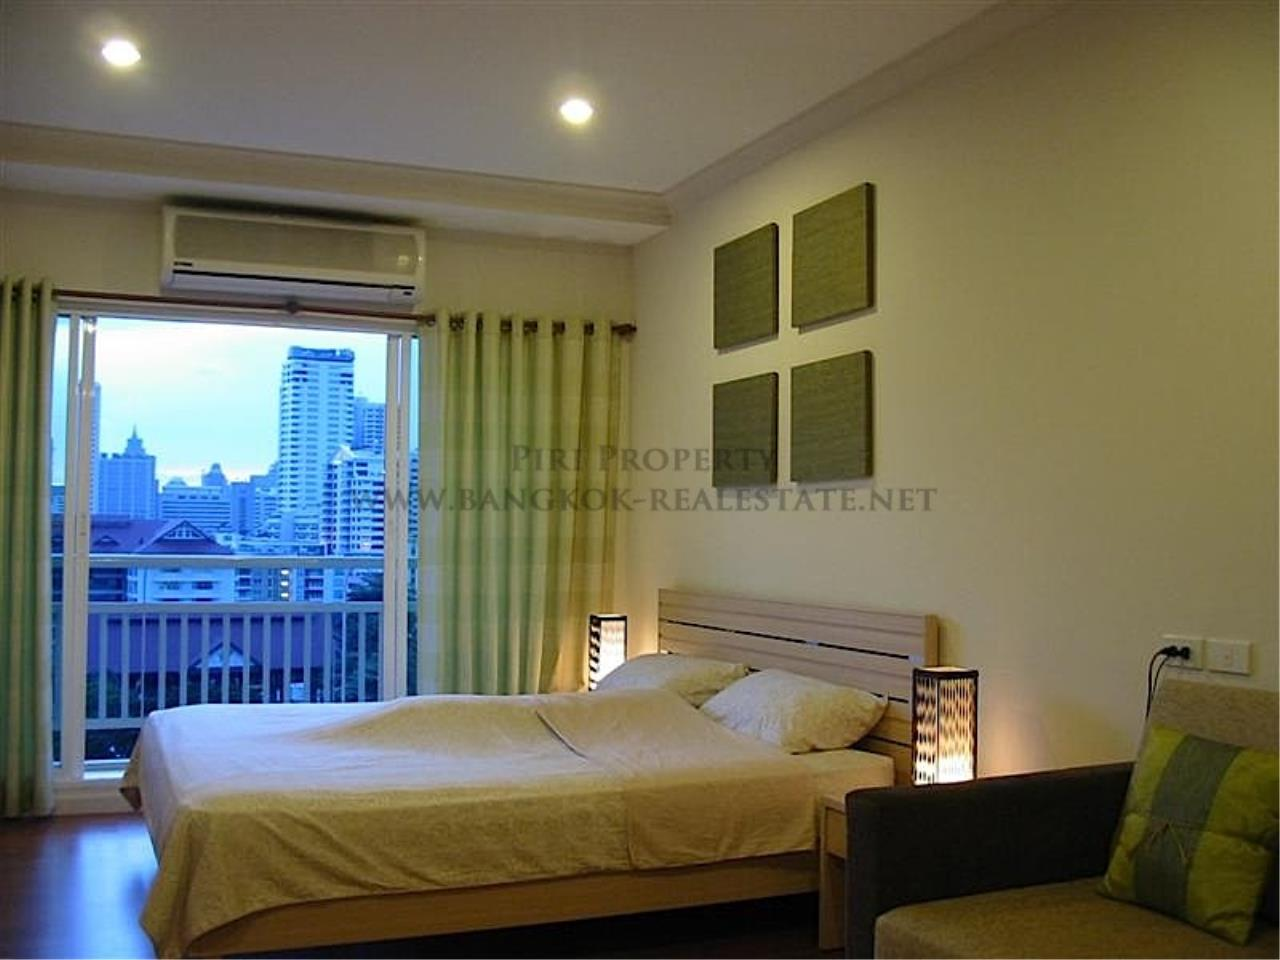 Piri Property Agency's Condo in High Rise Building in Asoke 2